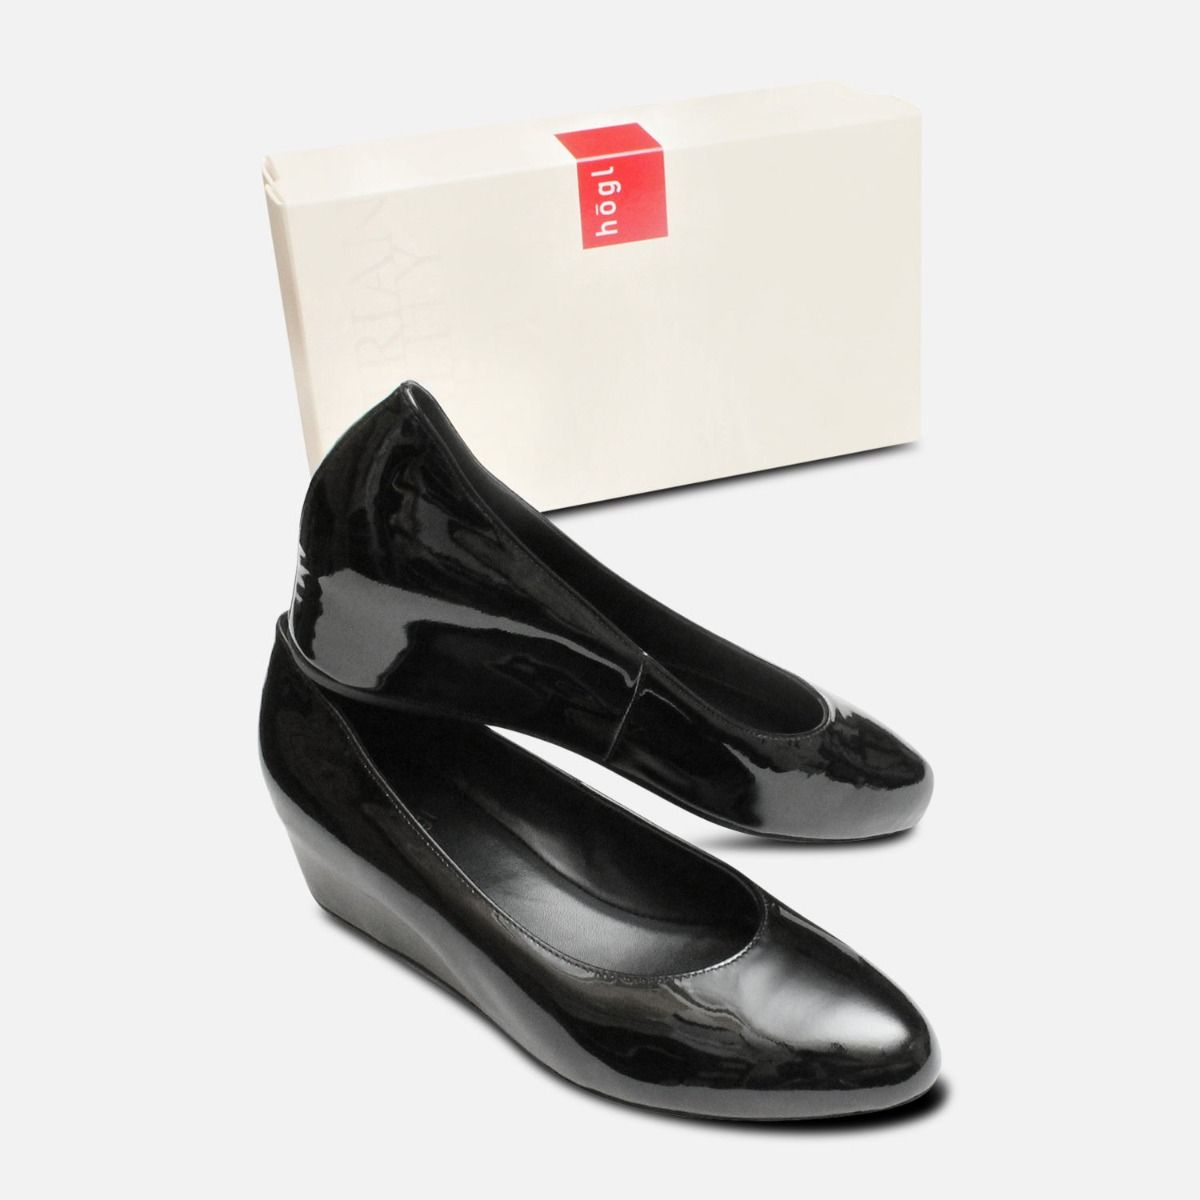 Hogl Black Patent Leather Lace-Up Oxford UK 4 /& 7 Only